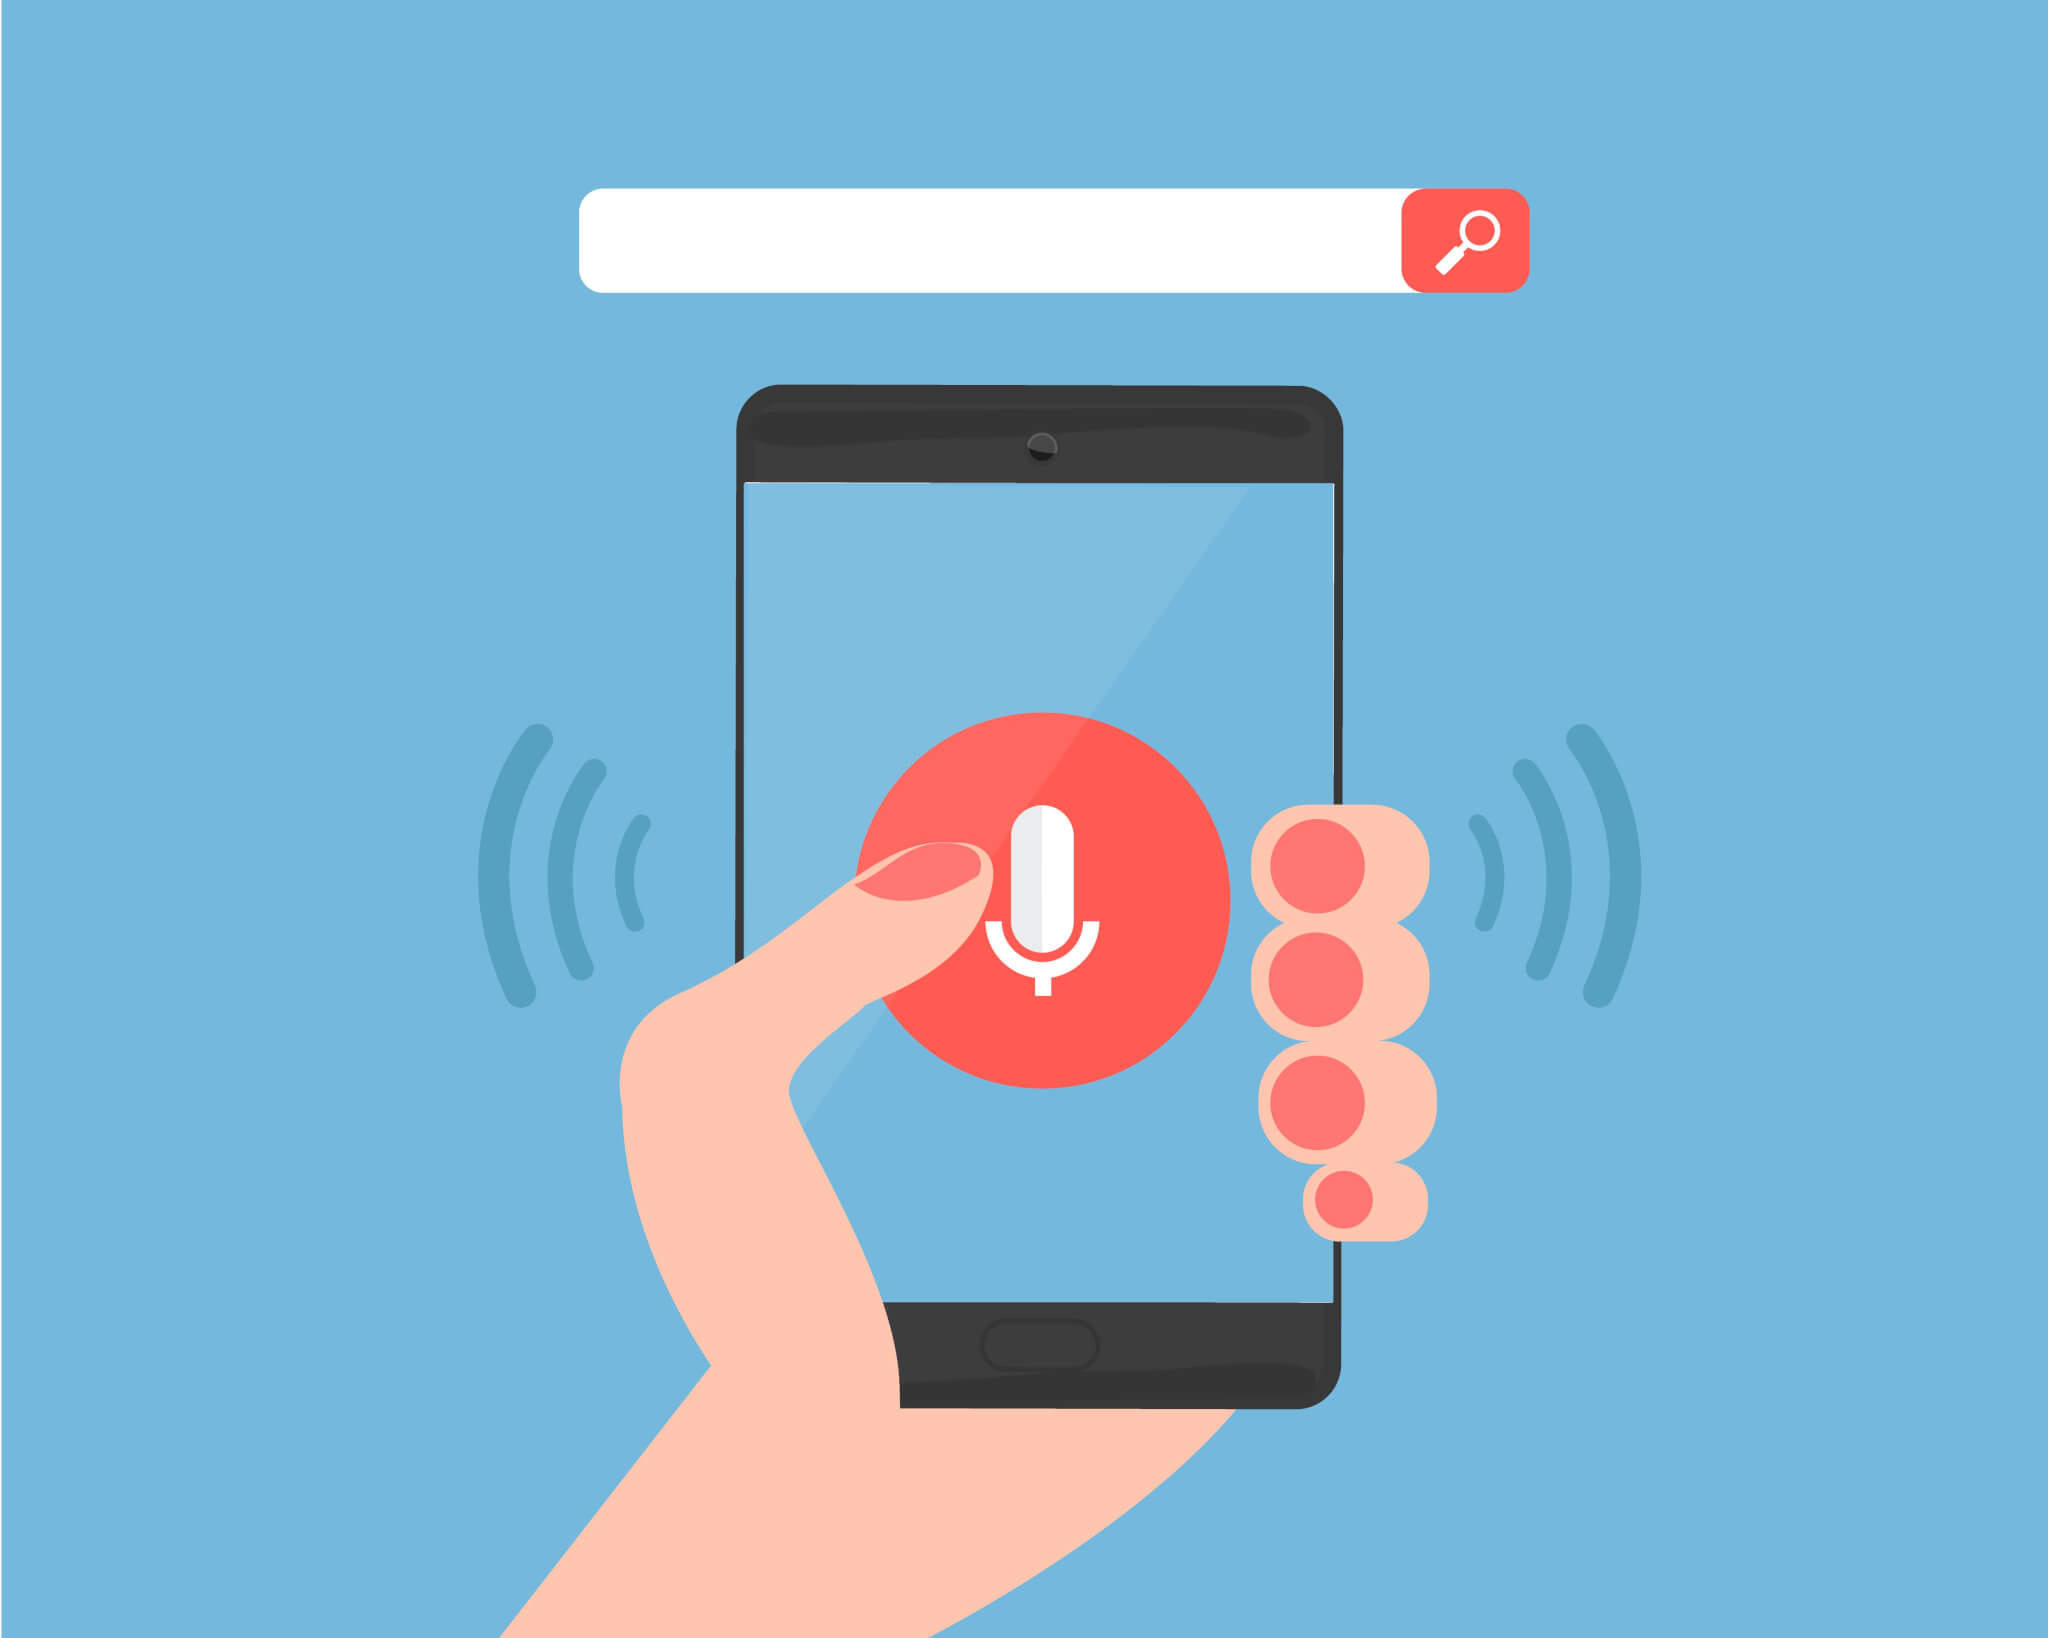 activate voice search on mobile